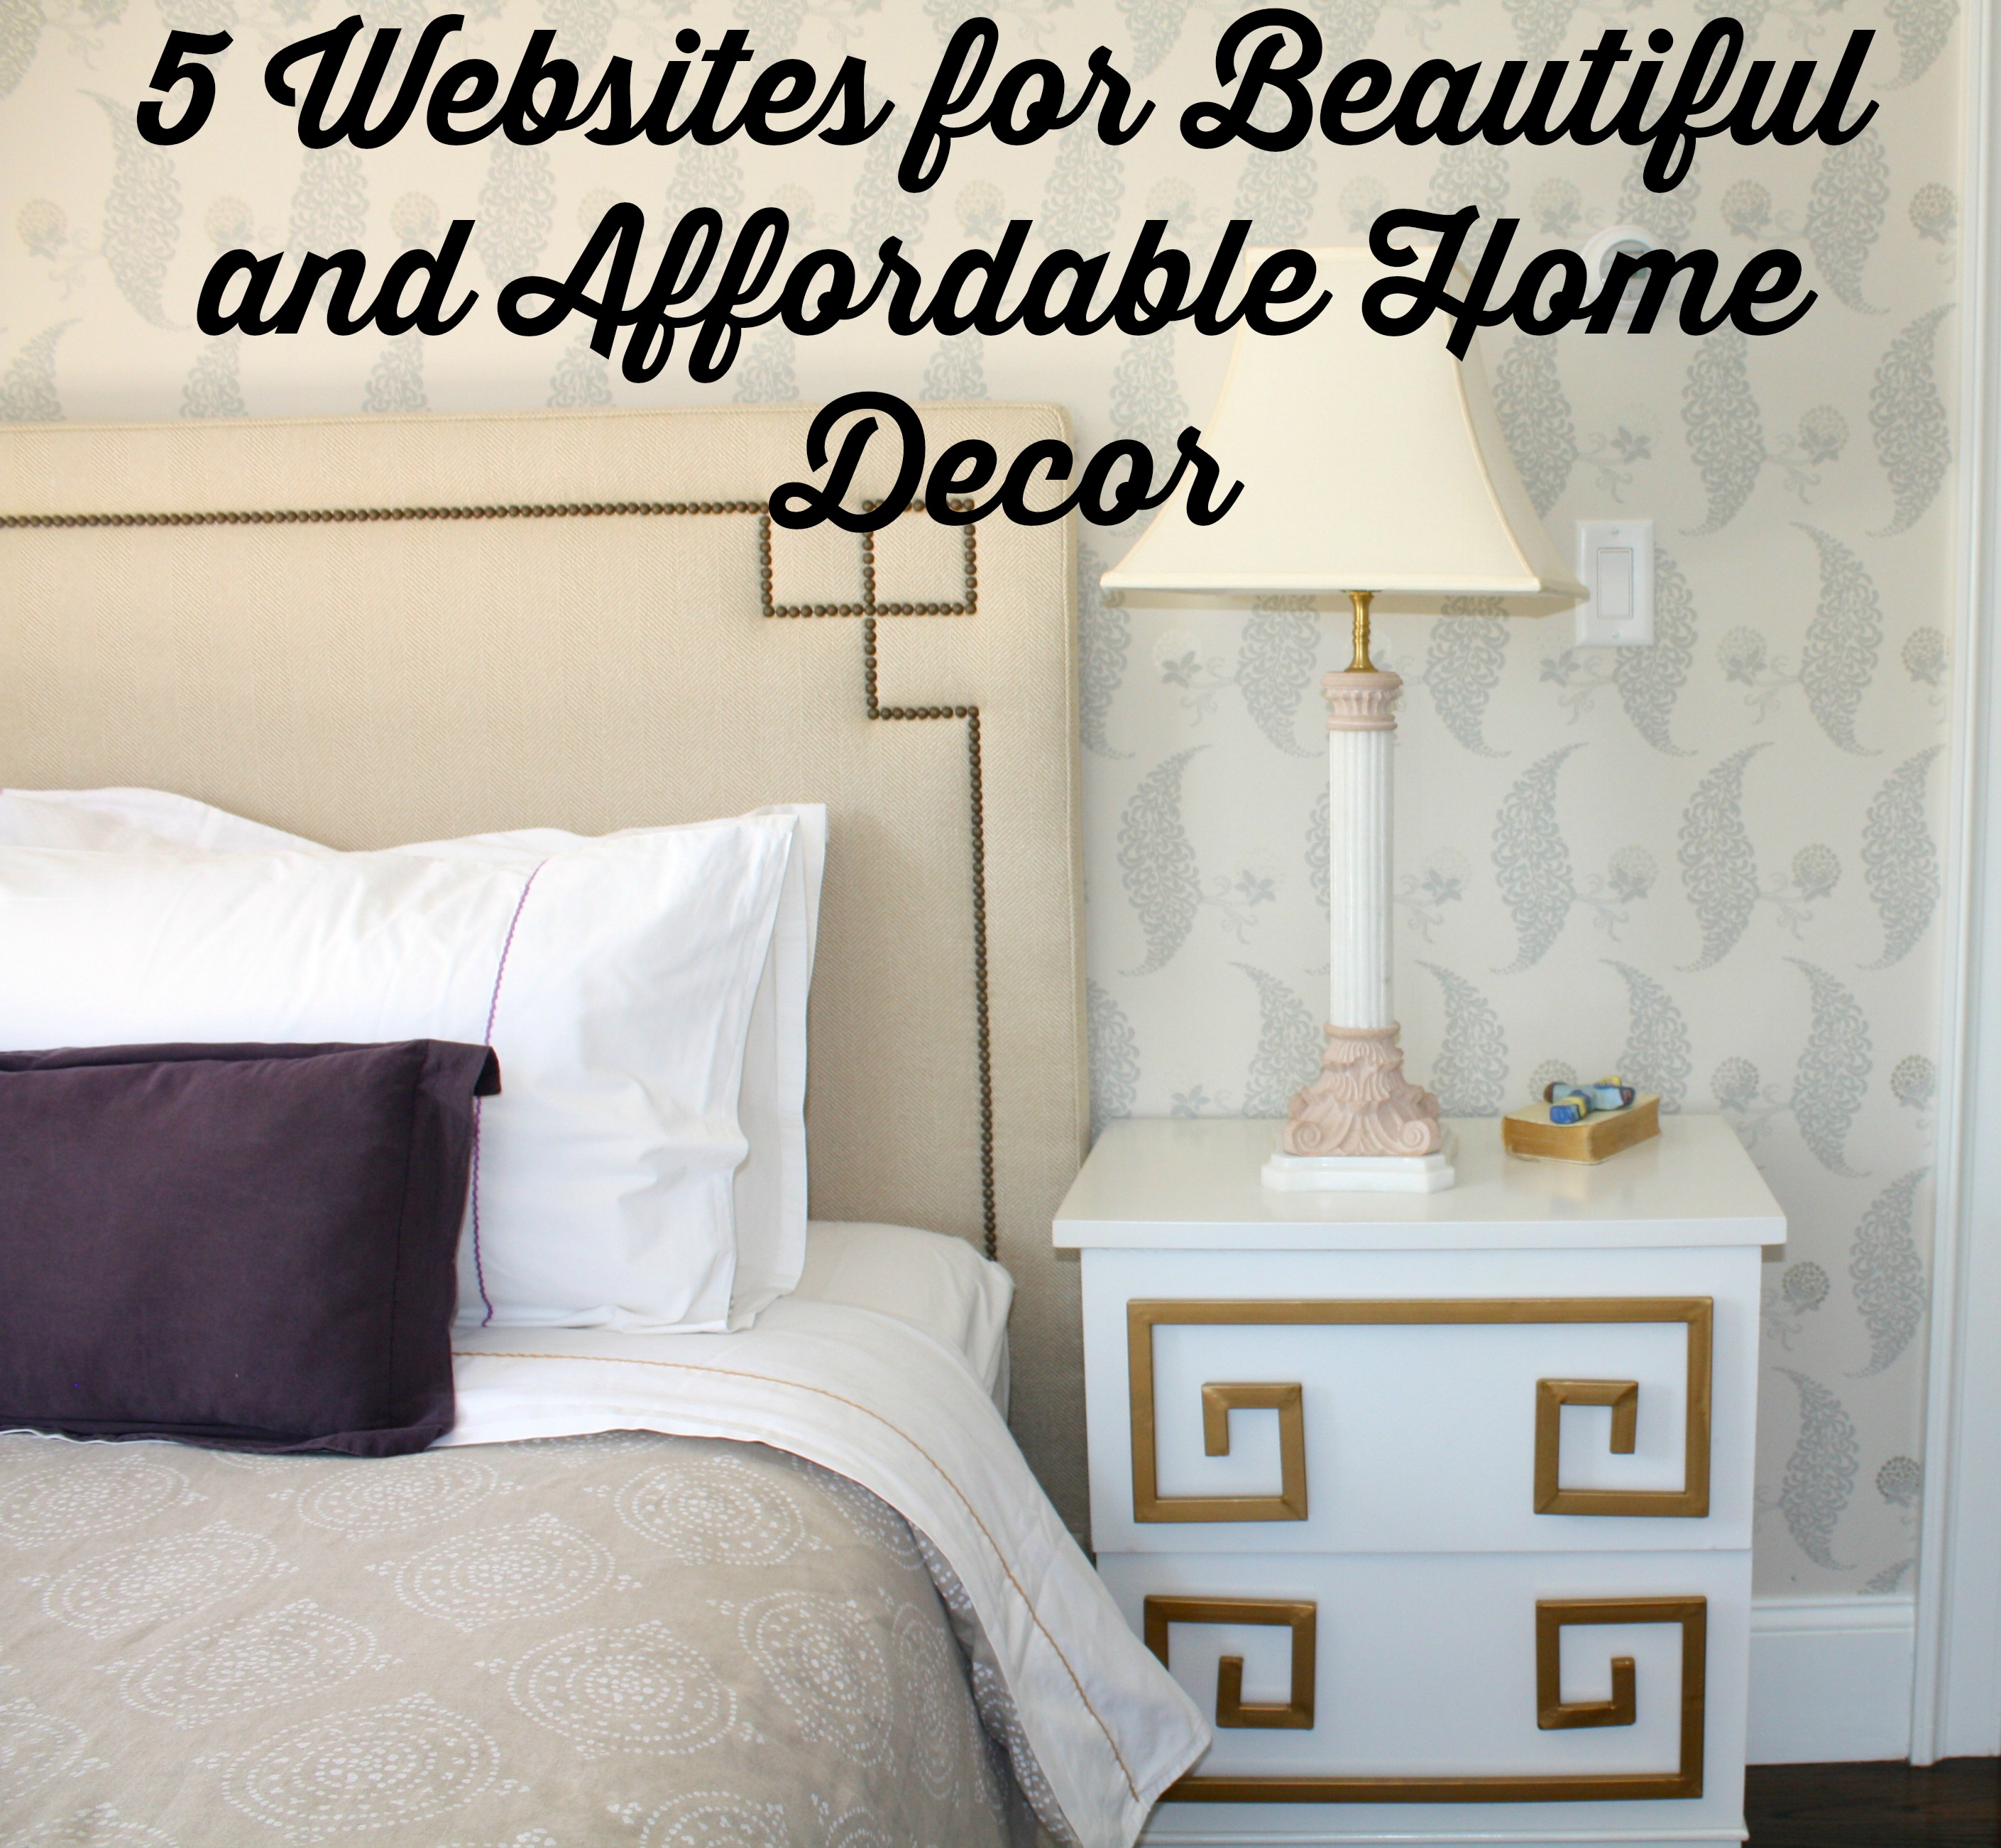 Friday Favorites 5 websites for Beautiful and Affordable home decor  Run Gia Run